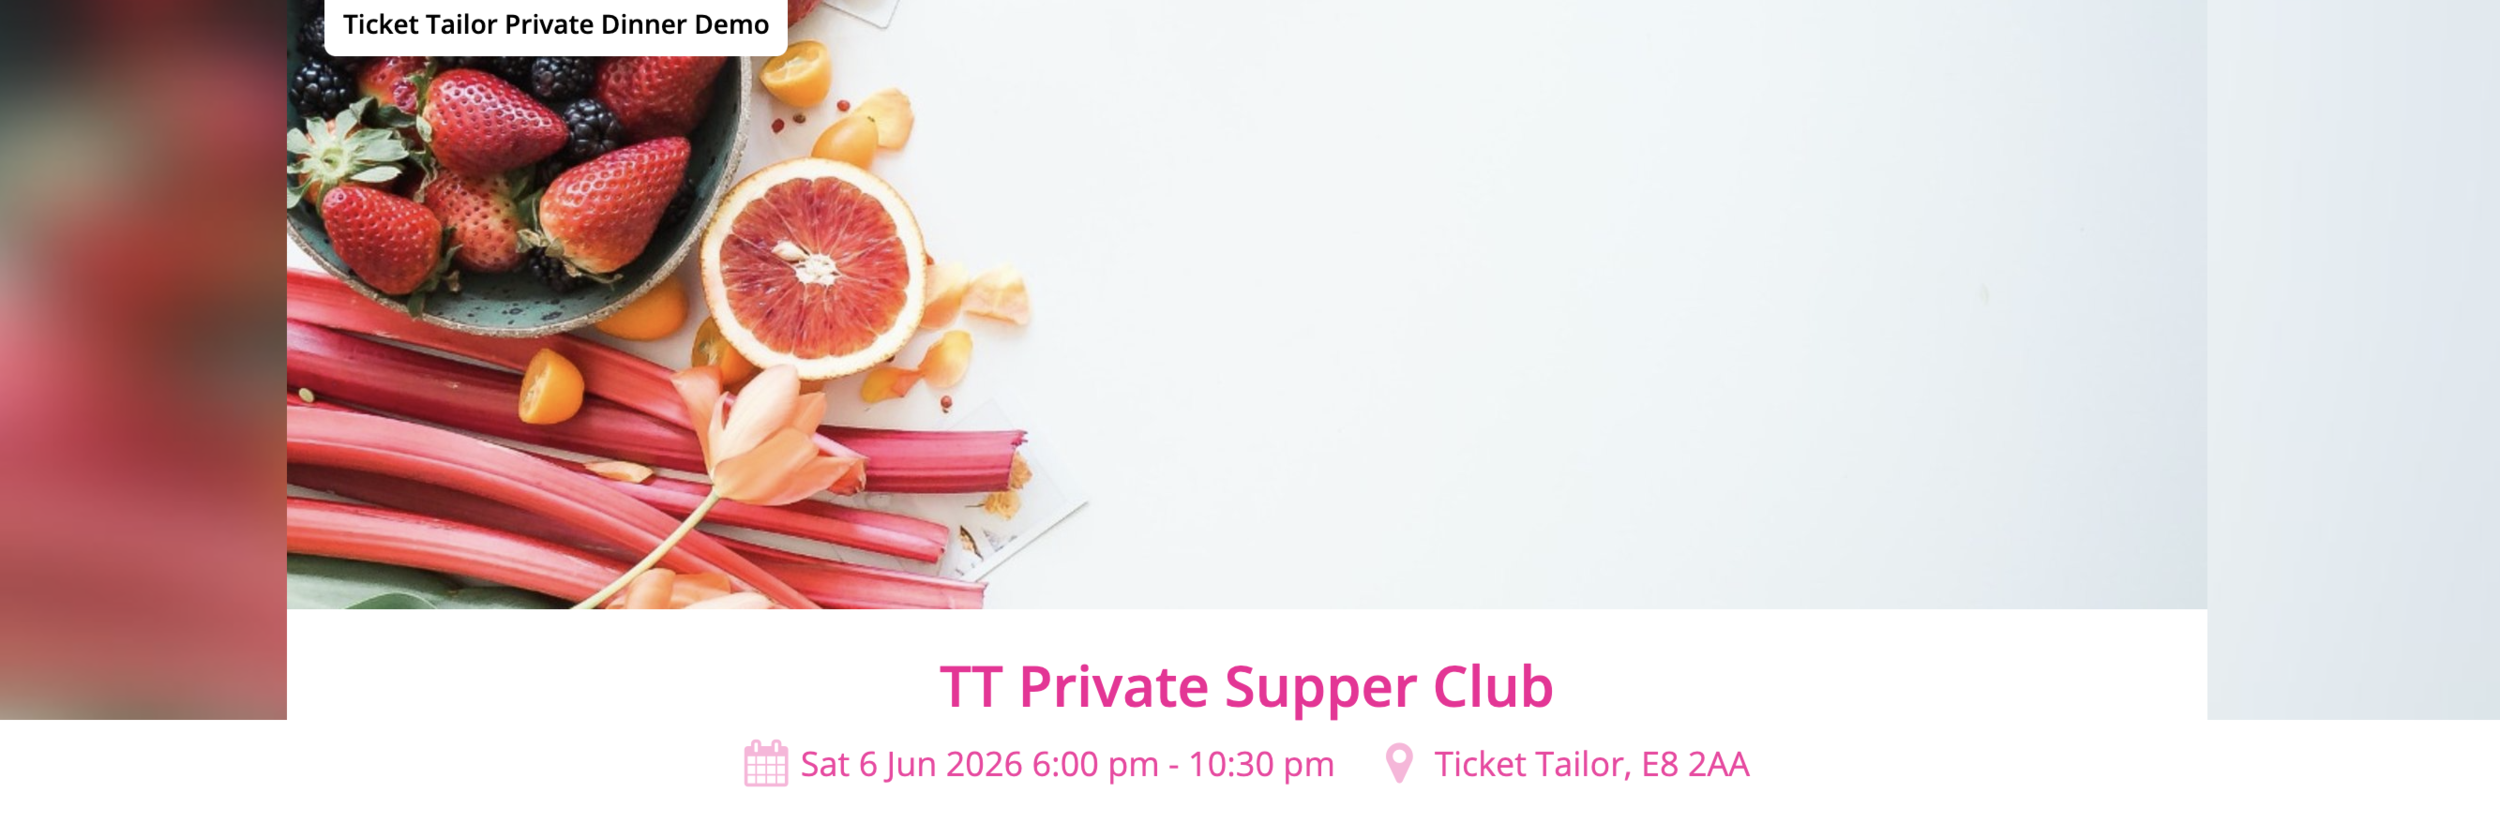 Sell tickets for a private dinner party